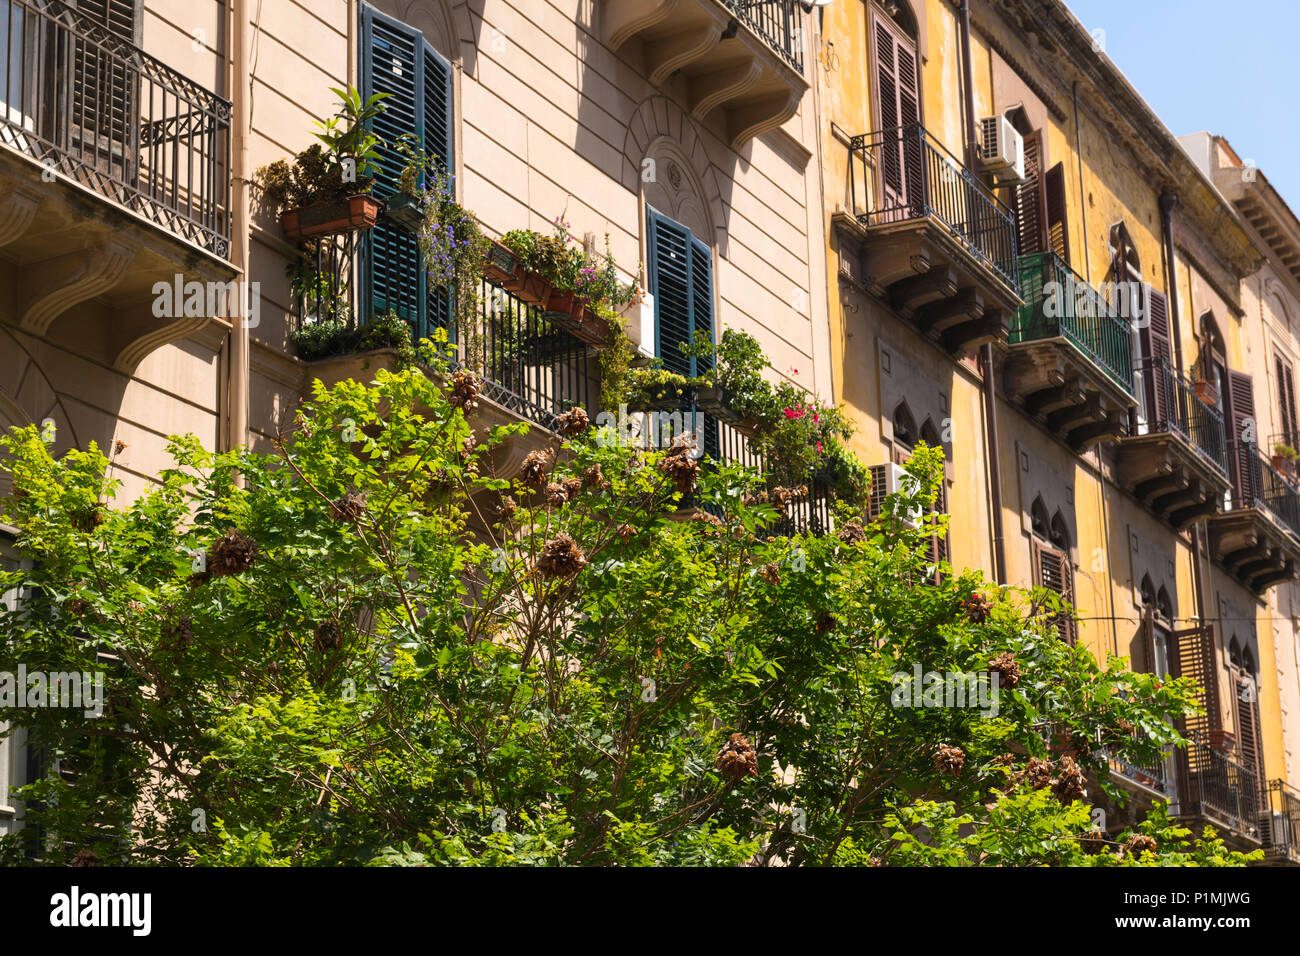 Italy Sicily Palermo typical block blocks of flats apartments condos with balconies potted plants planters flowers flora window boxes air con units - Stock Image